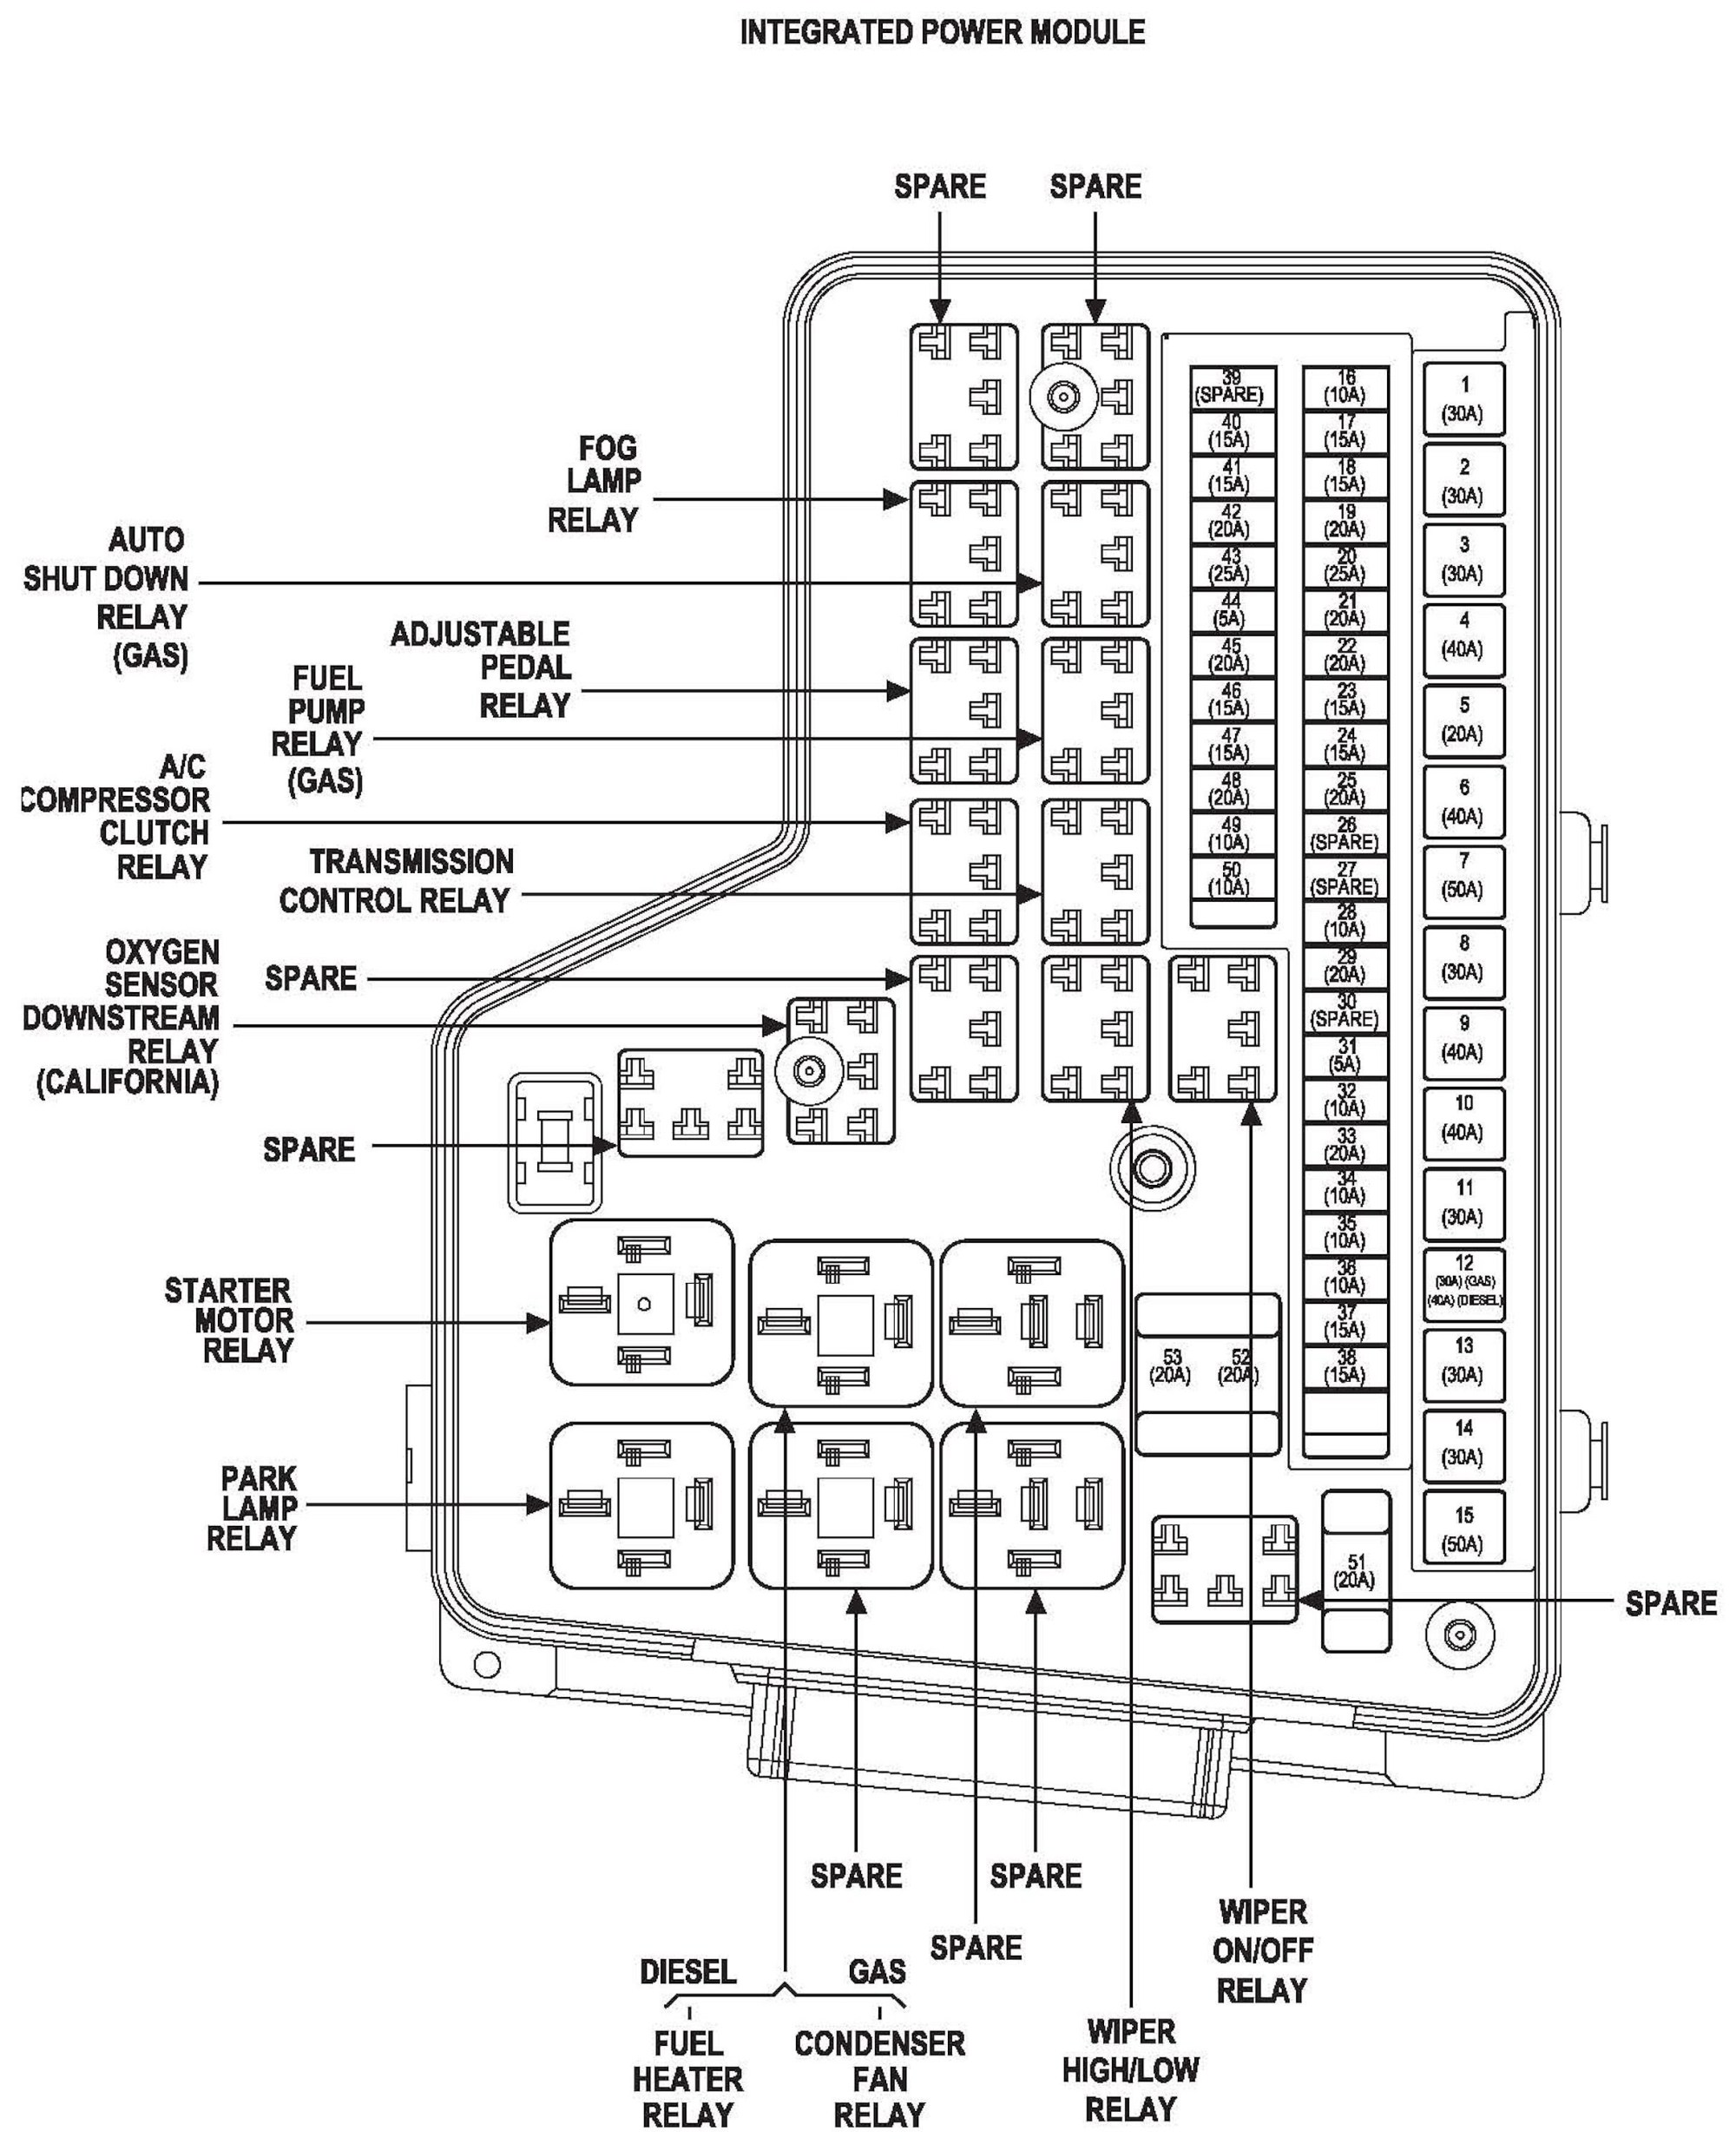 hight resolution of 2012 dodge ram 3500 fuse box wiring diagram new2012 ram 3500 fuse box free downloads wiring